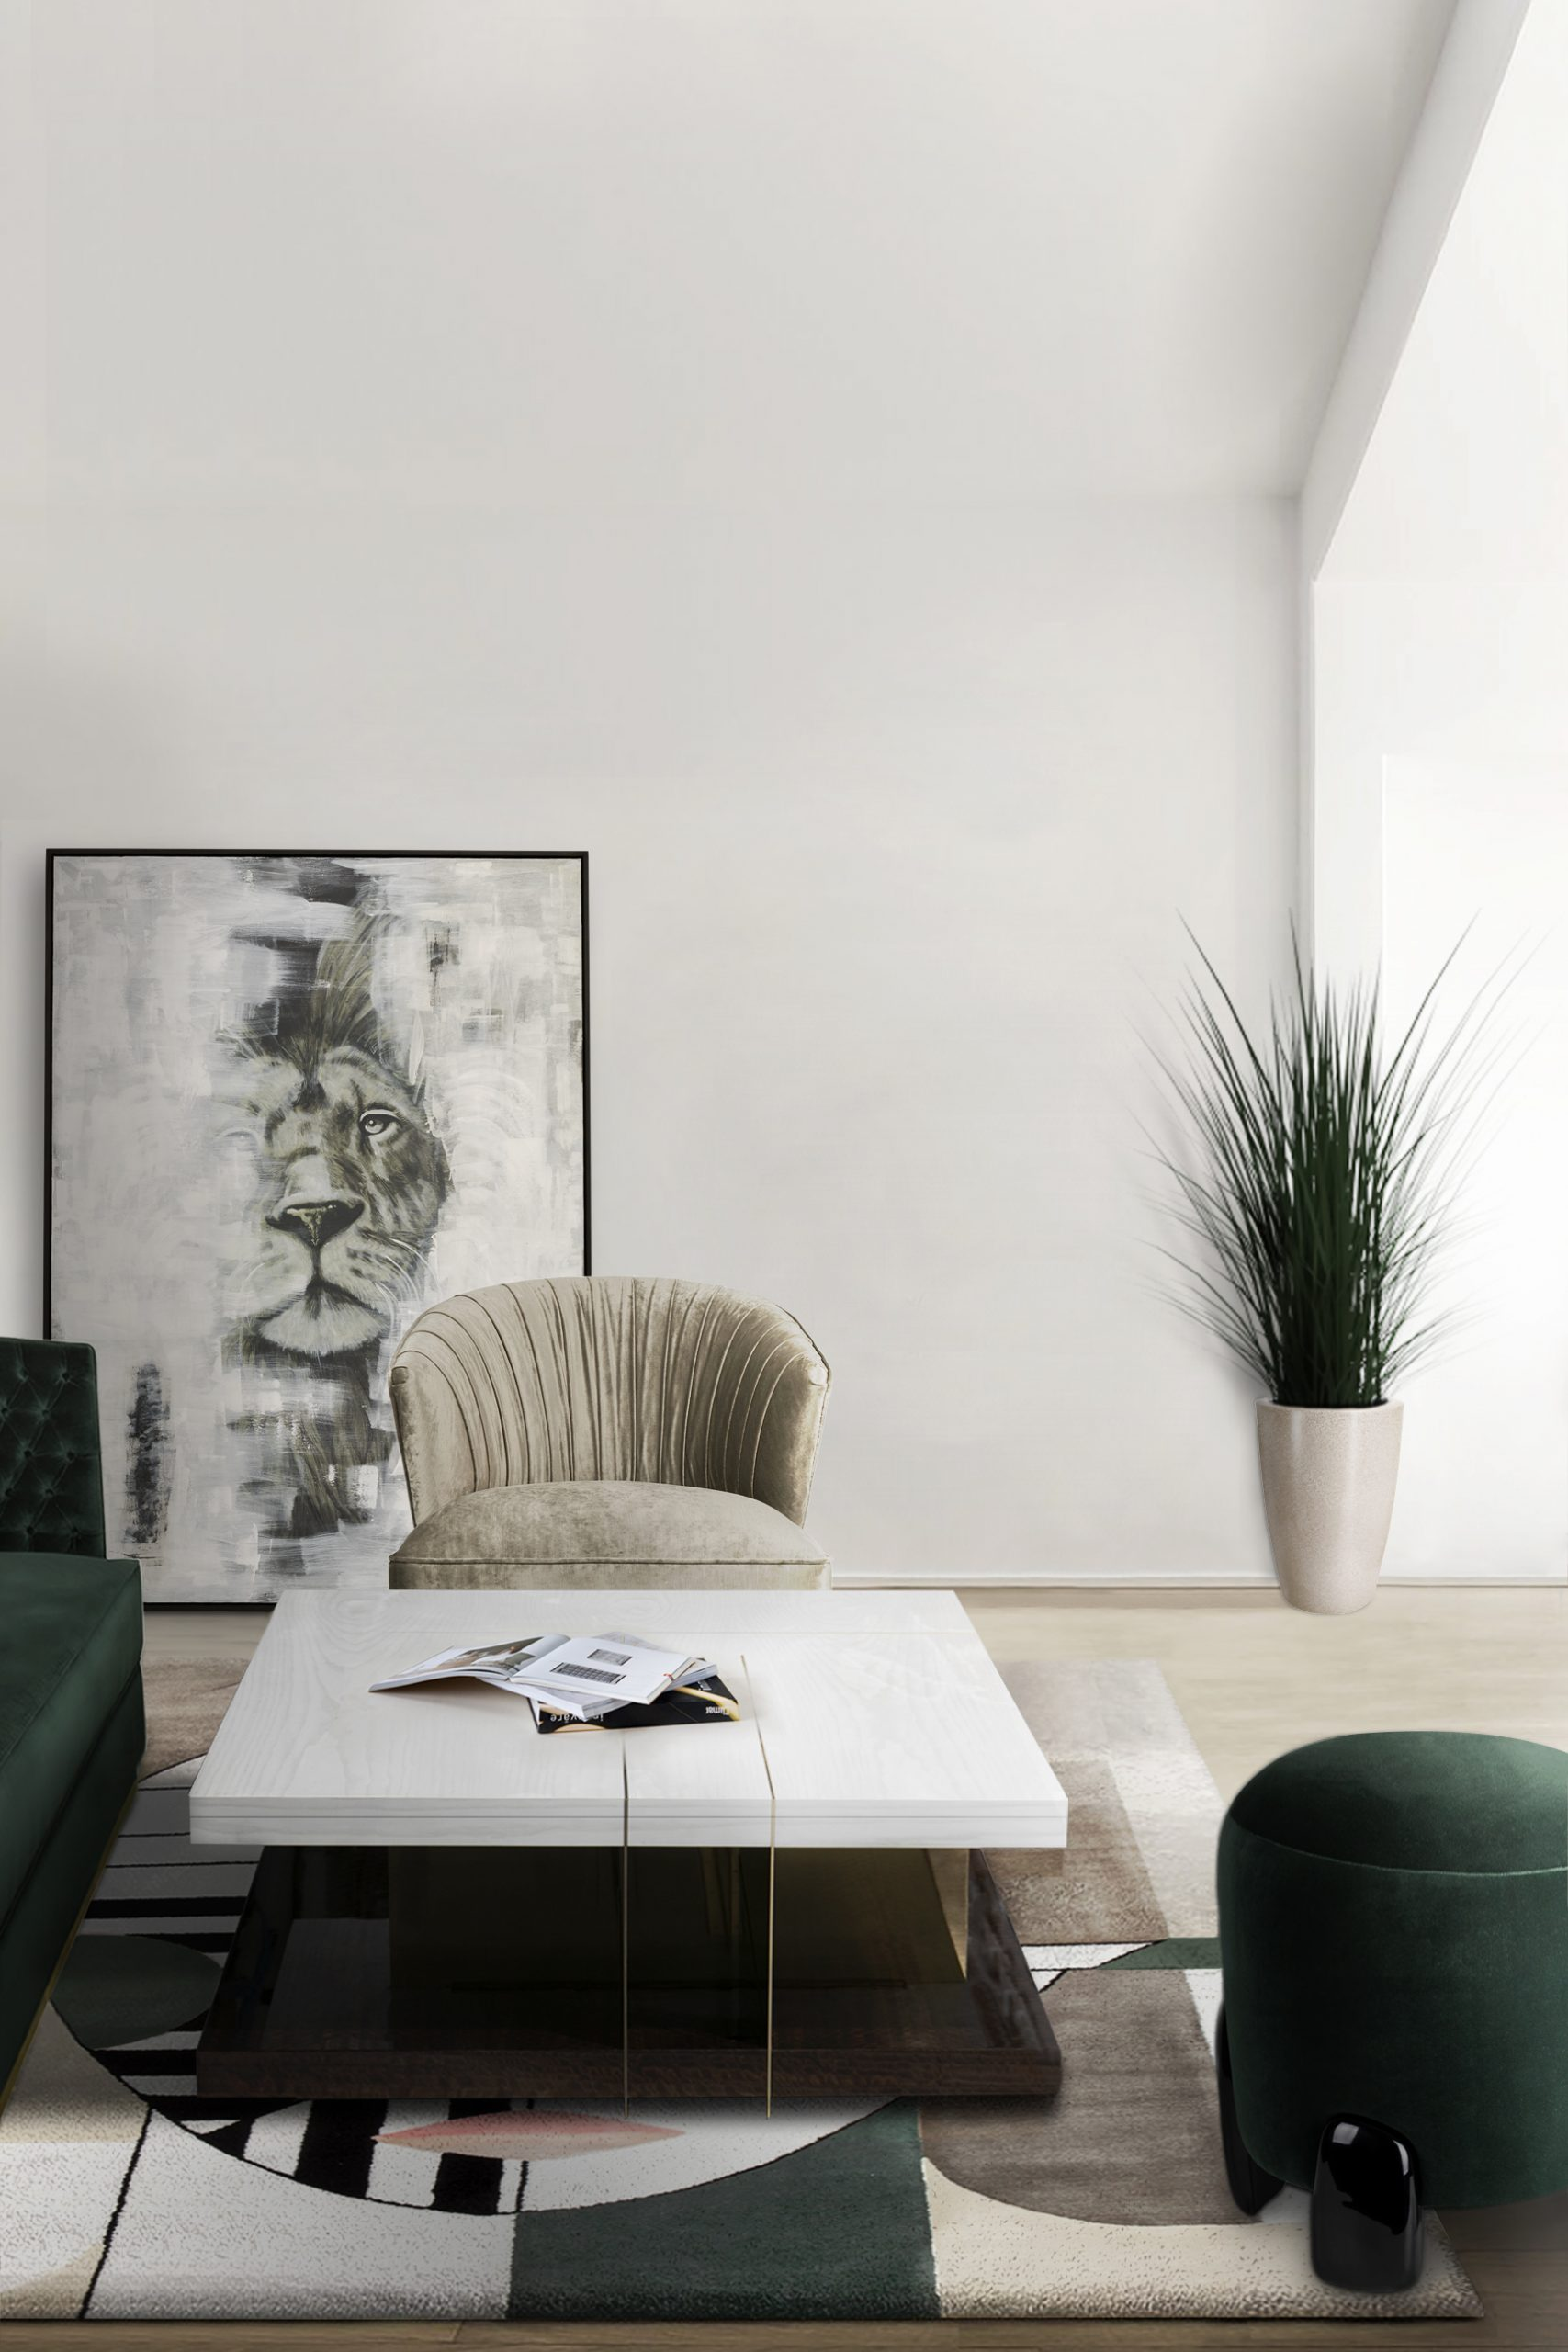 Earth tones: Renew Your Home With These Earth Tone Modern Chairs earth tones Earth tones: Renew Your Home With These Earth Tone Modern Chairs Earth tones Renew Your Home With These Earth Tone Modern ChairsEarth tones Renew Your Home With These Earth Tone Modern Chairs 3 scaled